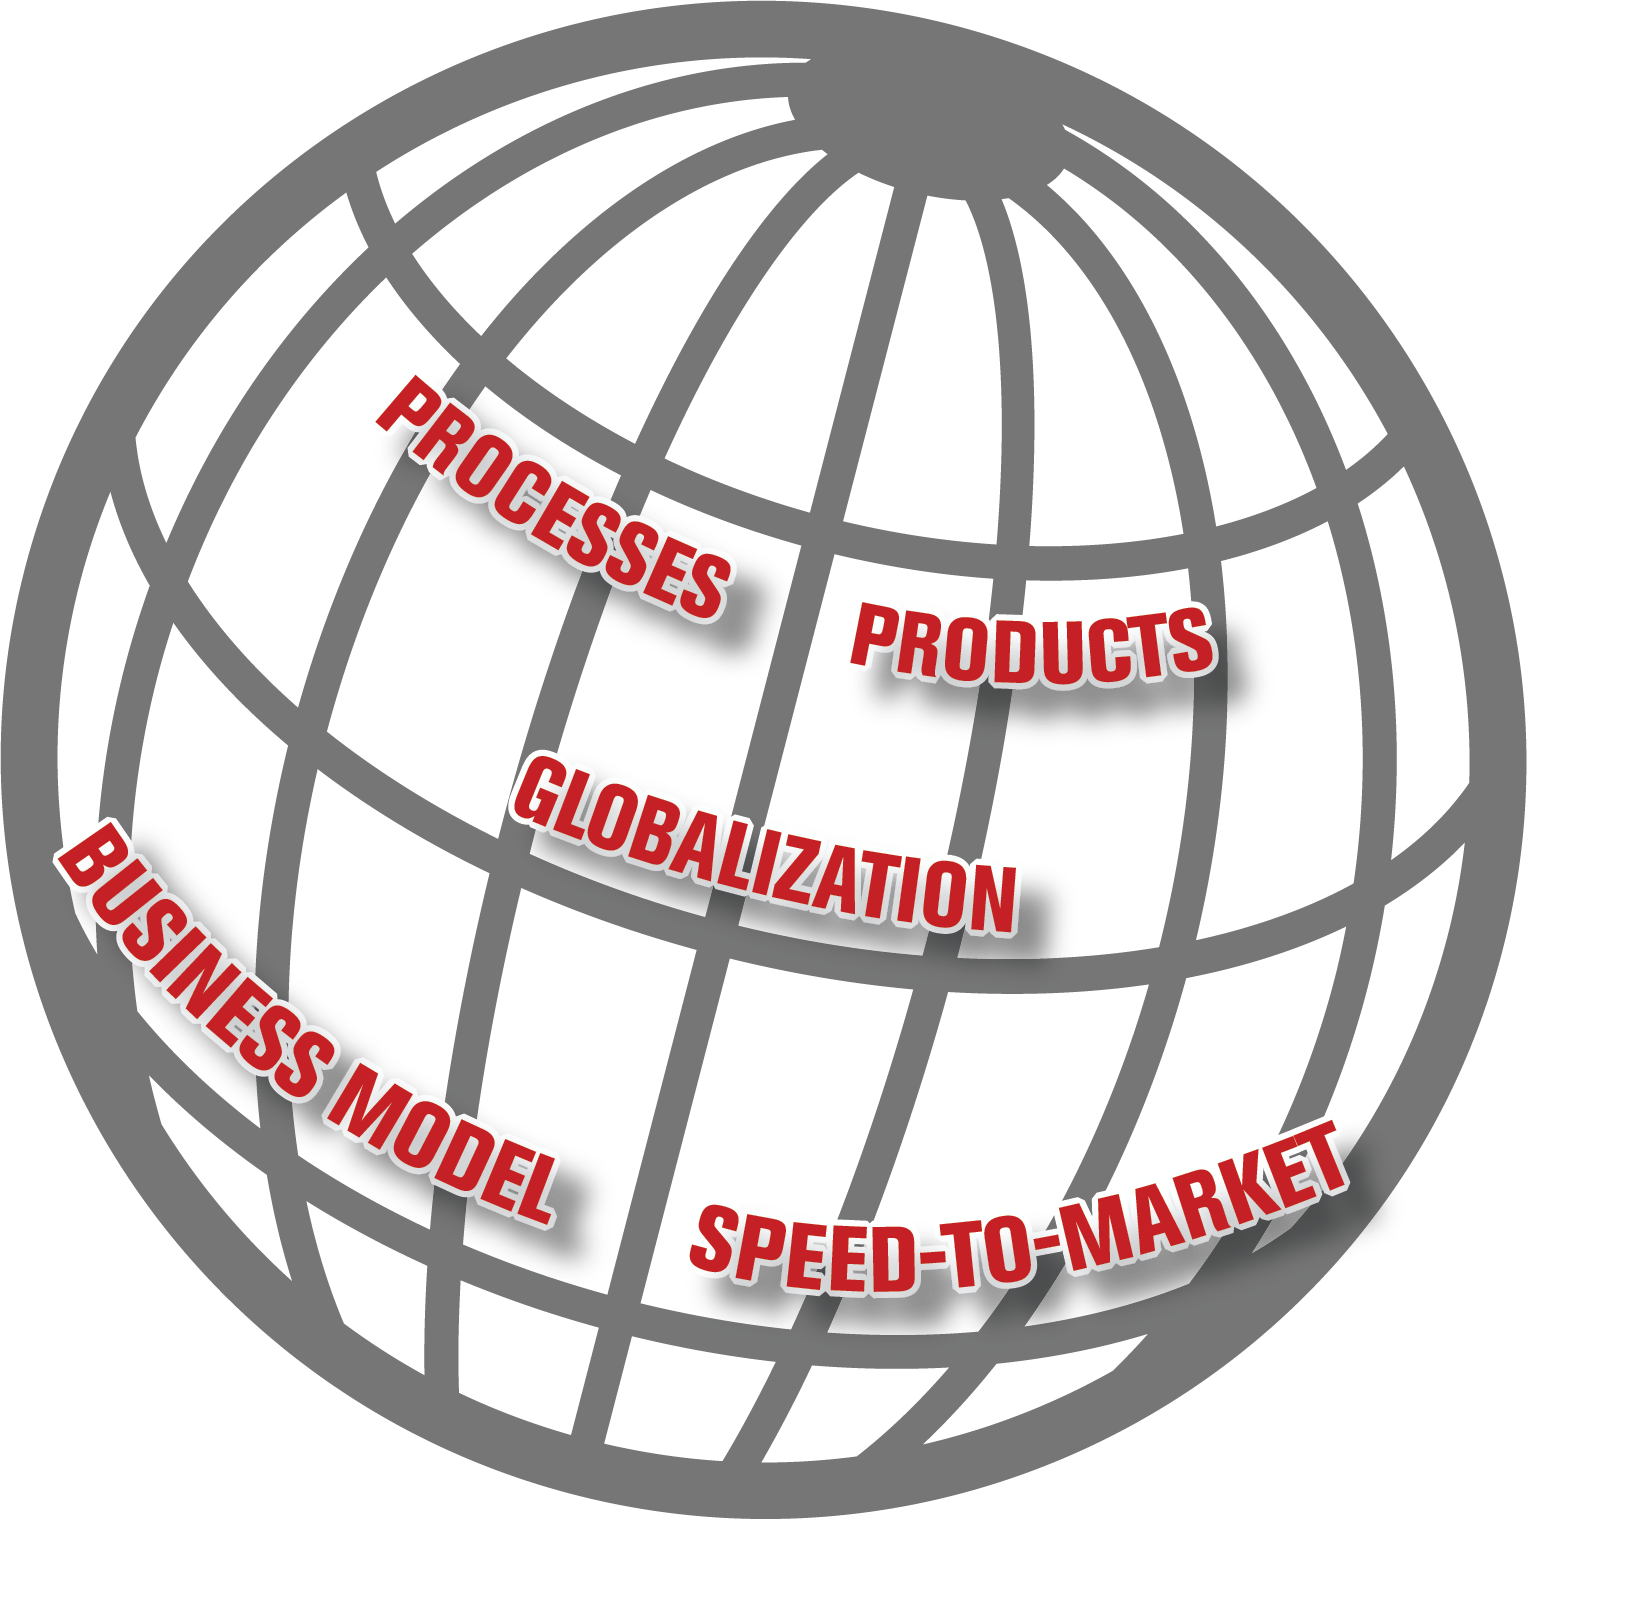 Globe with, Processes, Products, Globalization, Business Model and Speed-to-Market